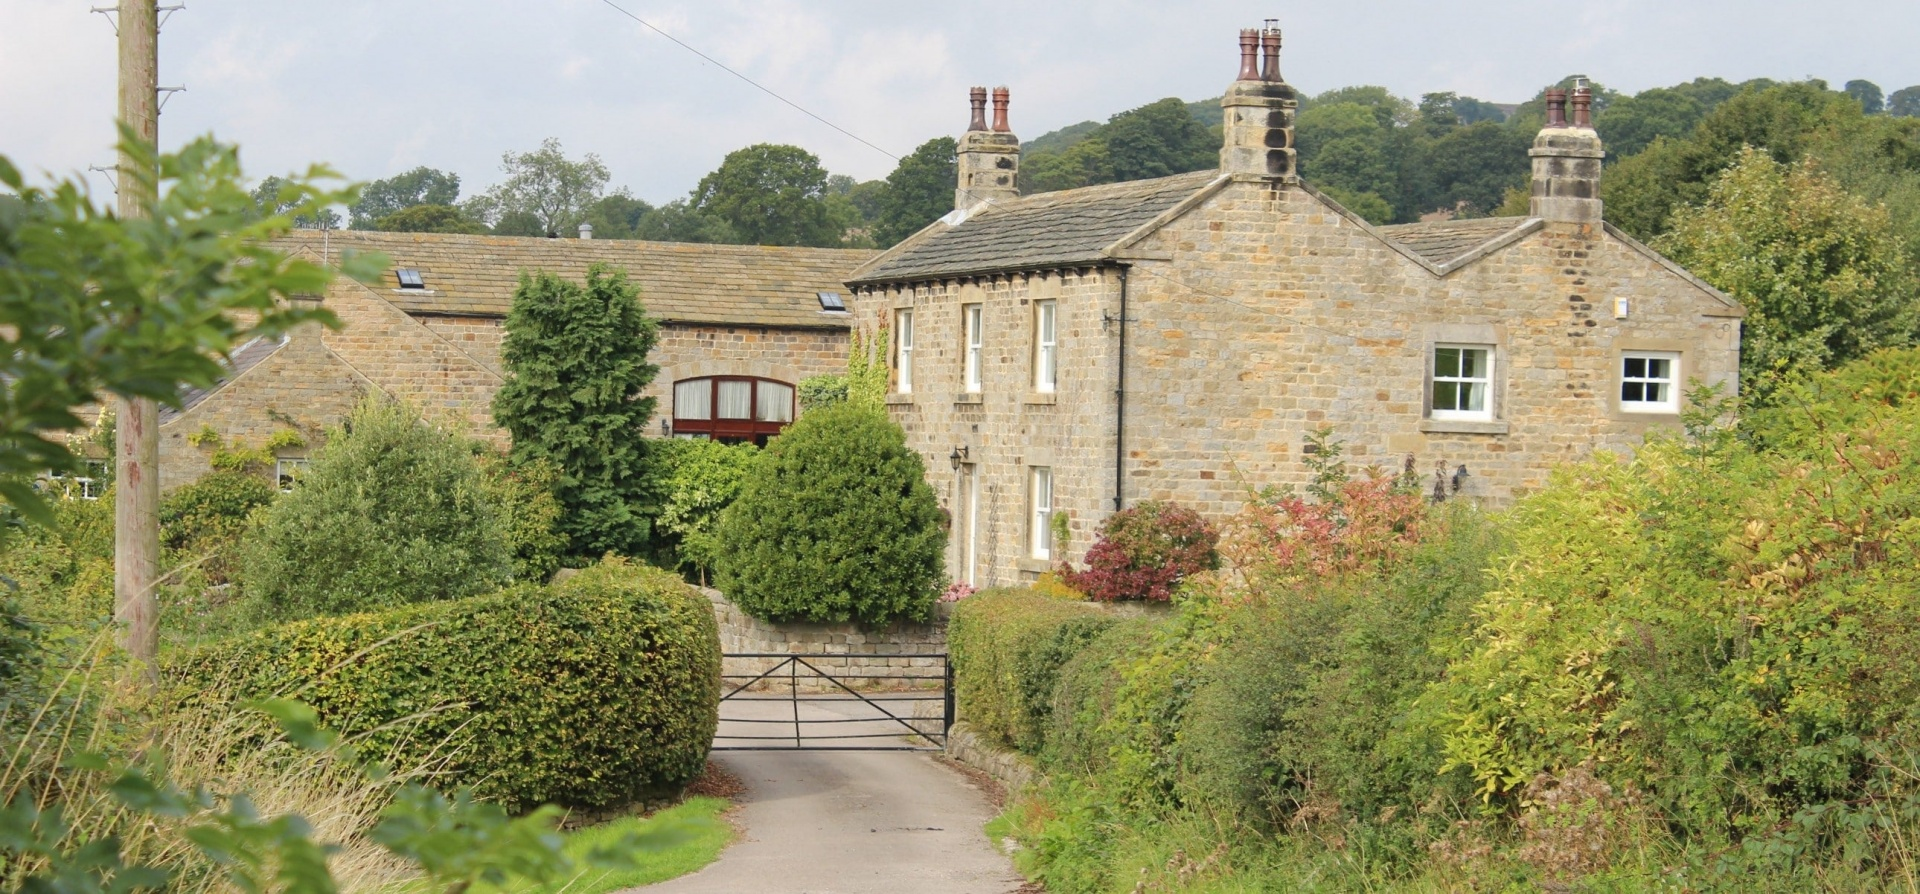 Emmerdale Filming Locations Bus Tour - Leeds-8